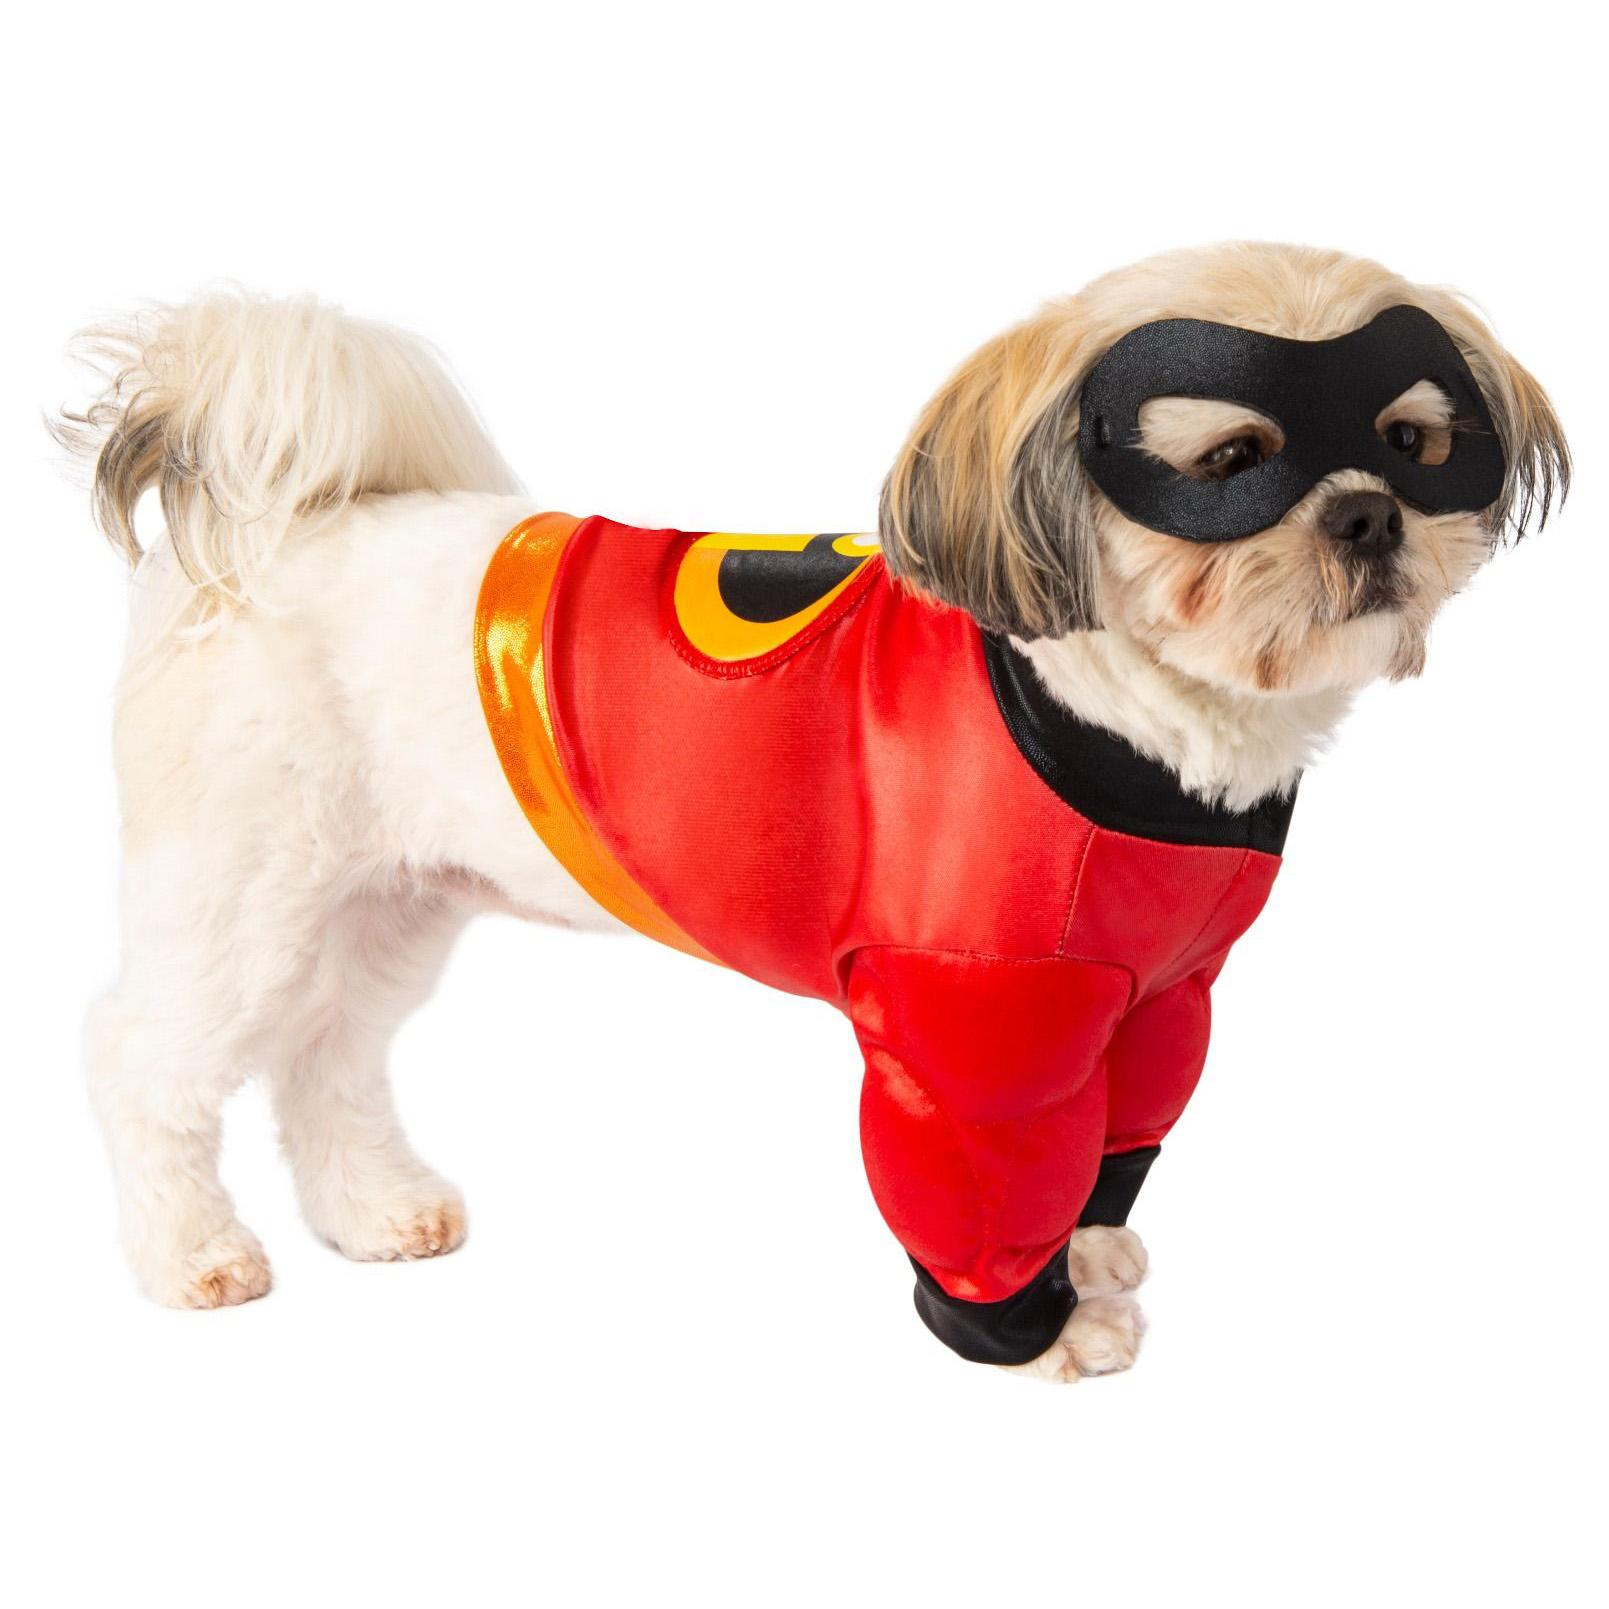 Disney Incredibles Dog Costume by Rubies